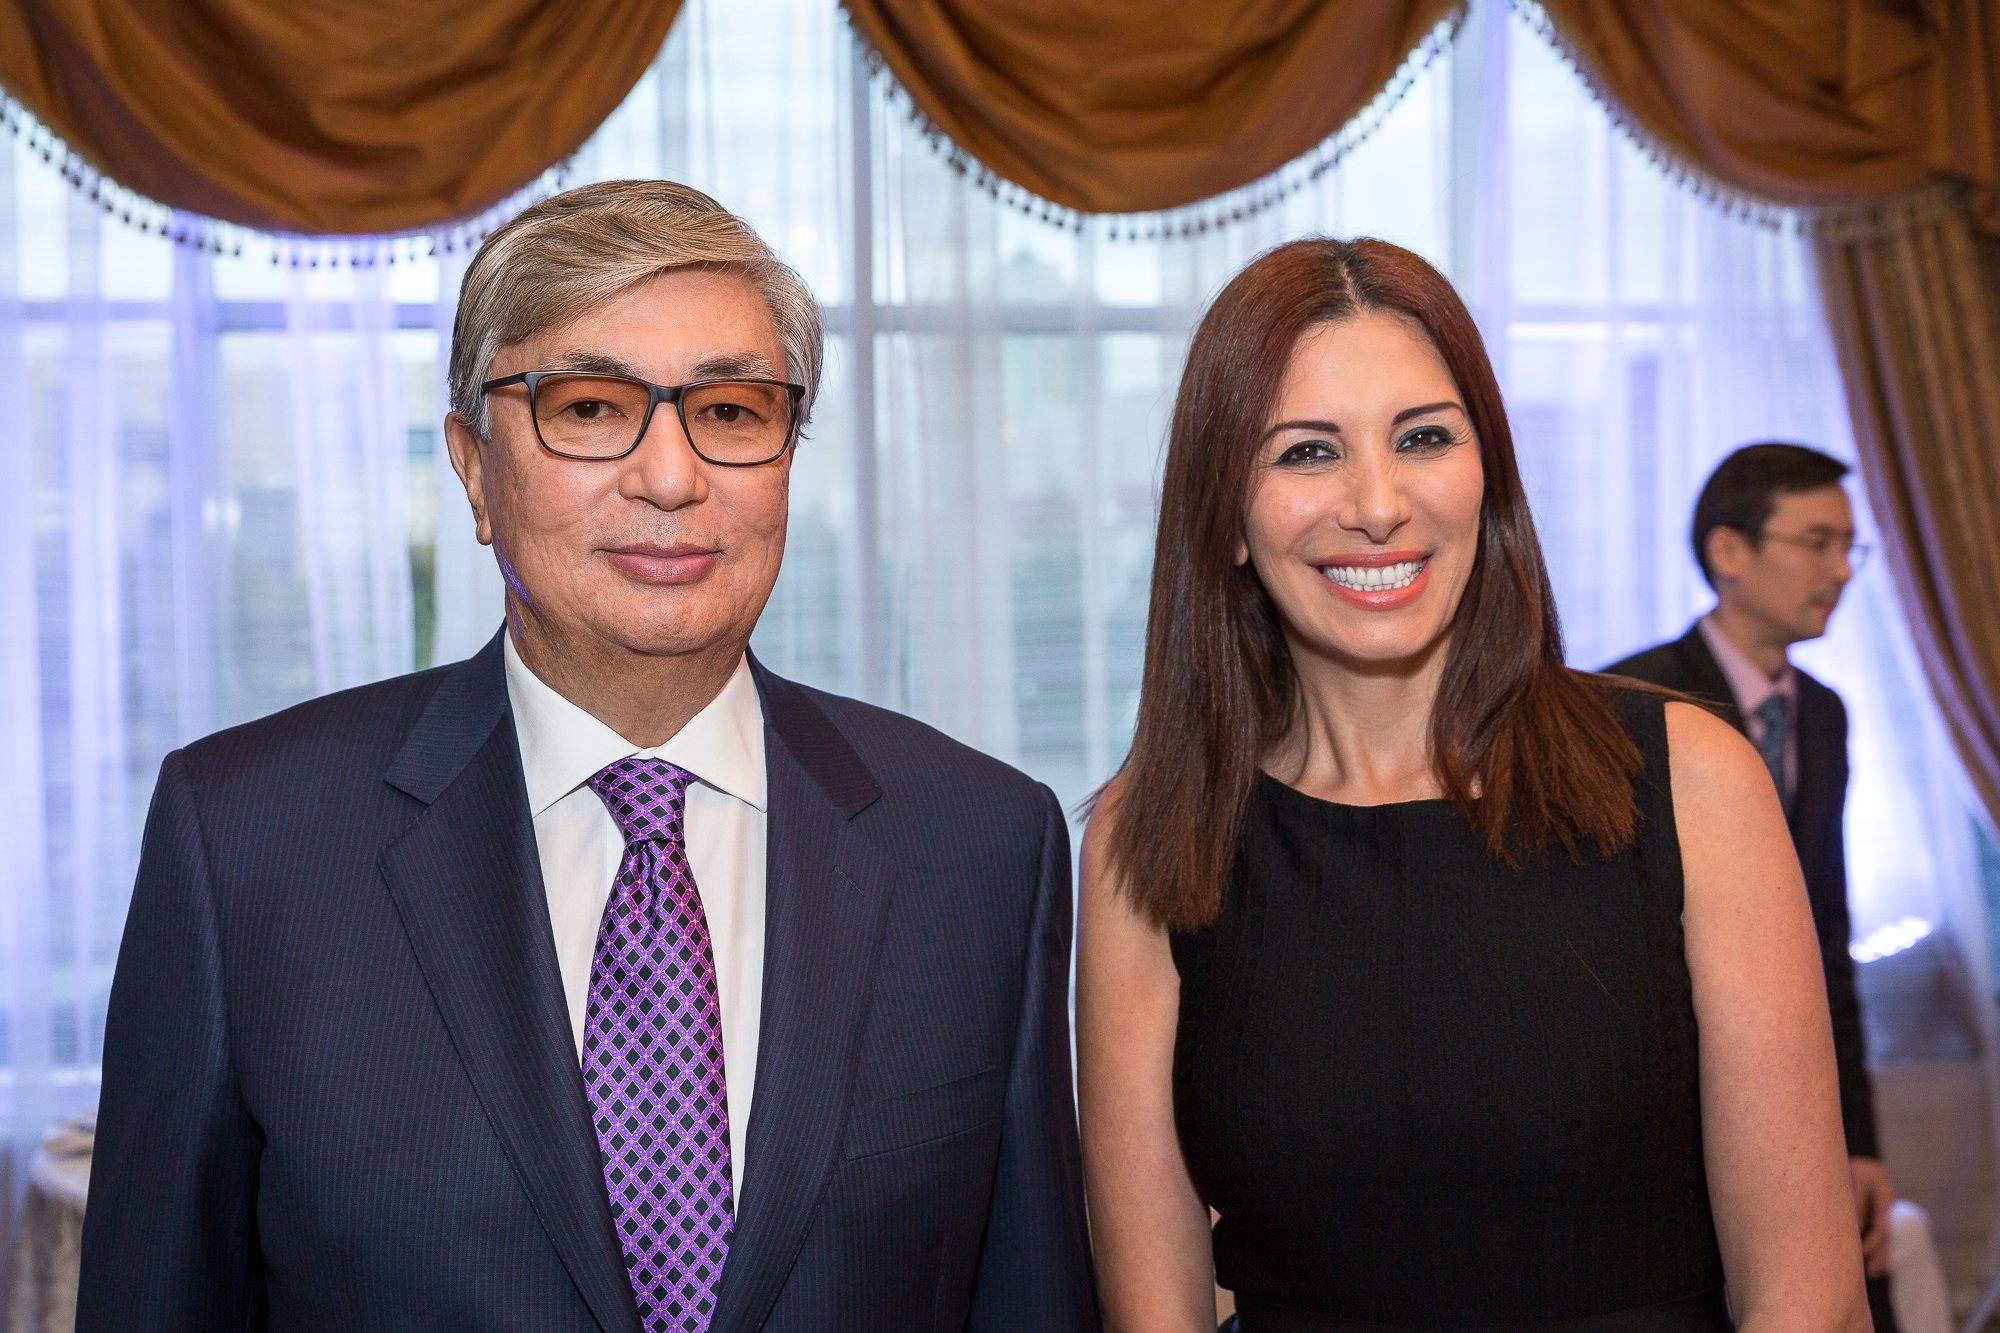 1-Randa-Kassis-with-the-Chairman-of-the-Senate-of-Kazakhstan-Kassym-Jomart-Tokayev.